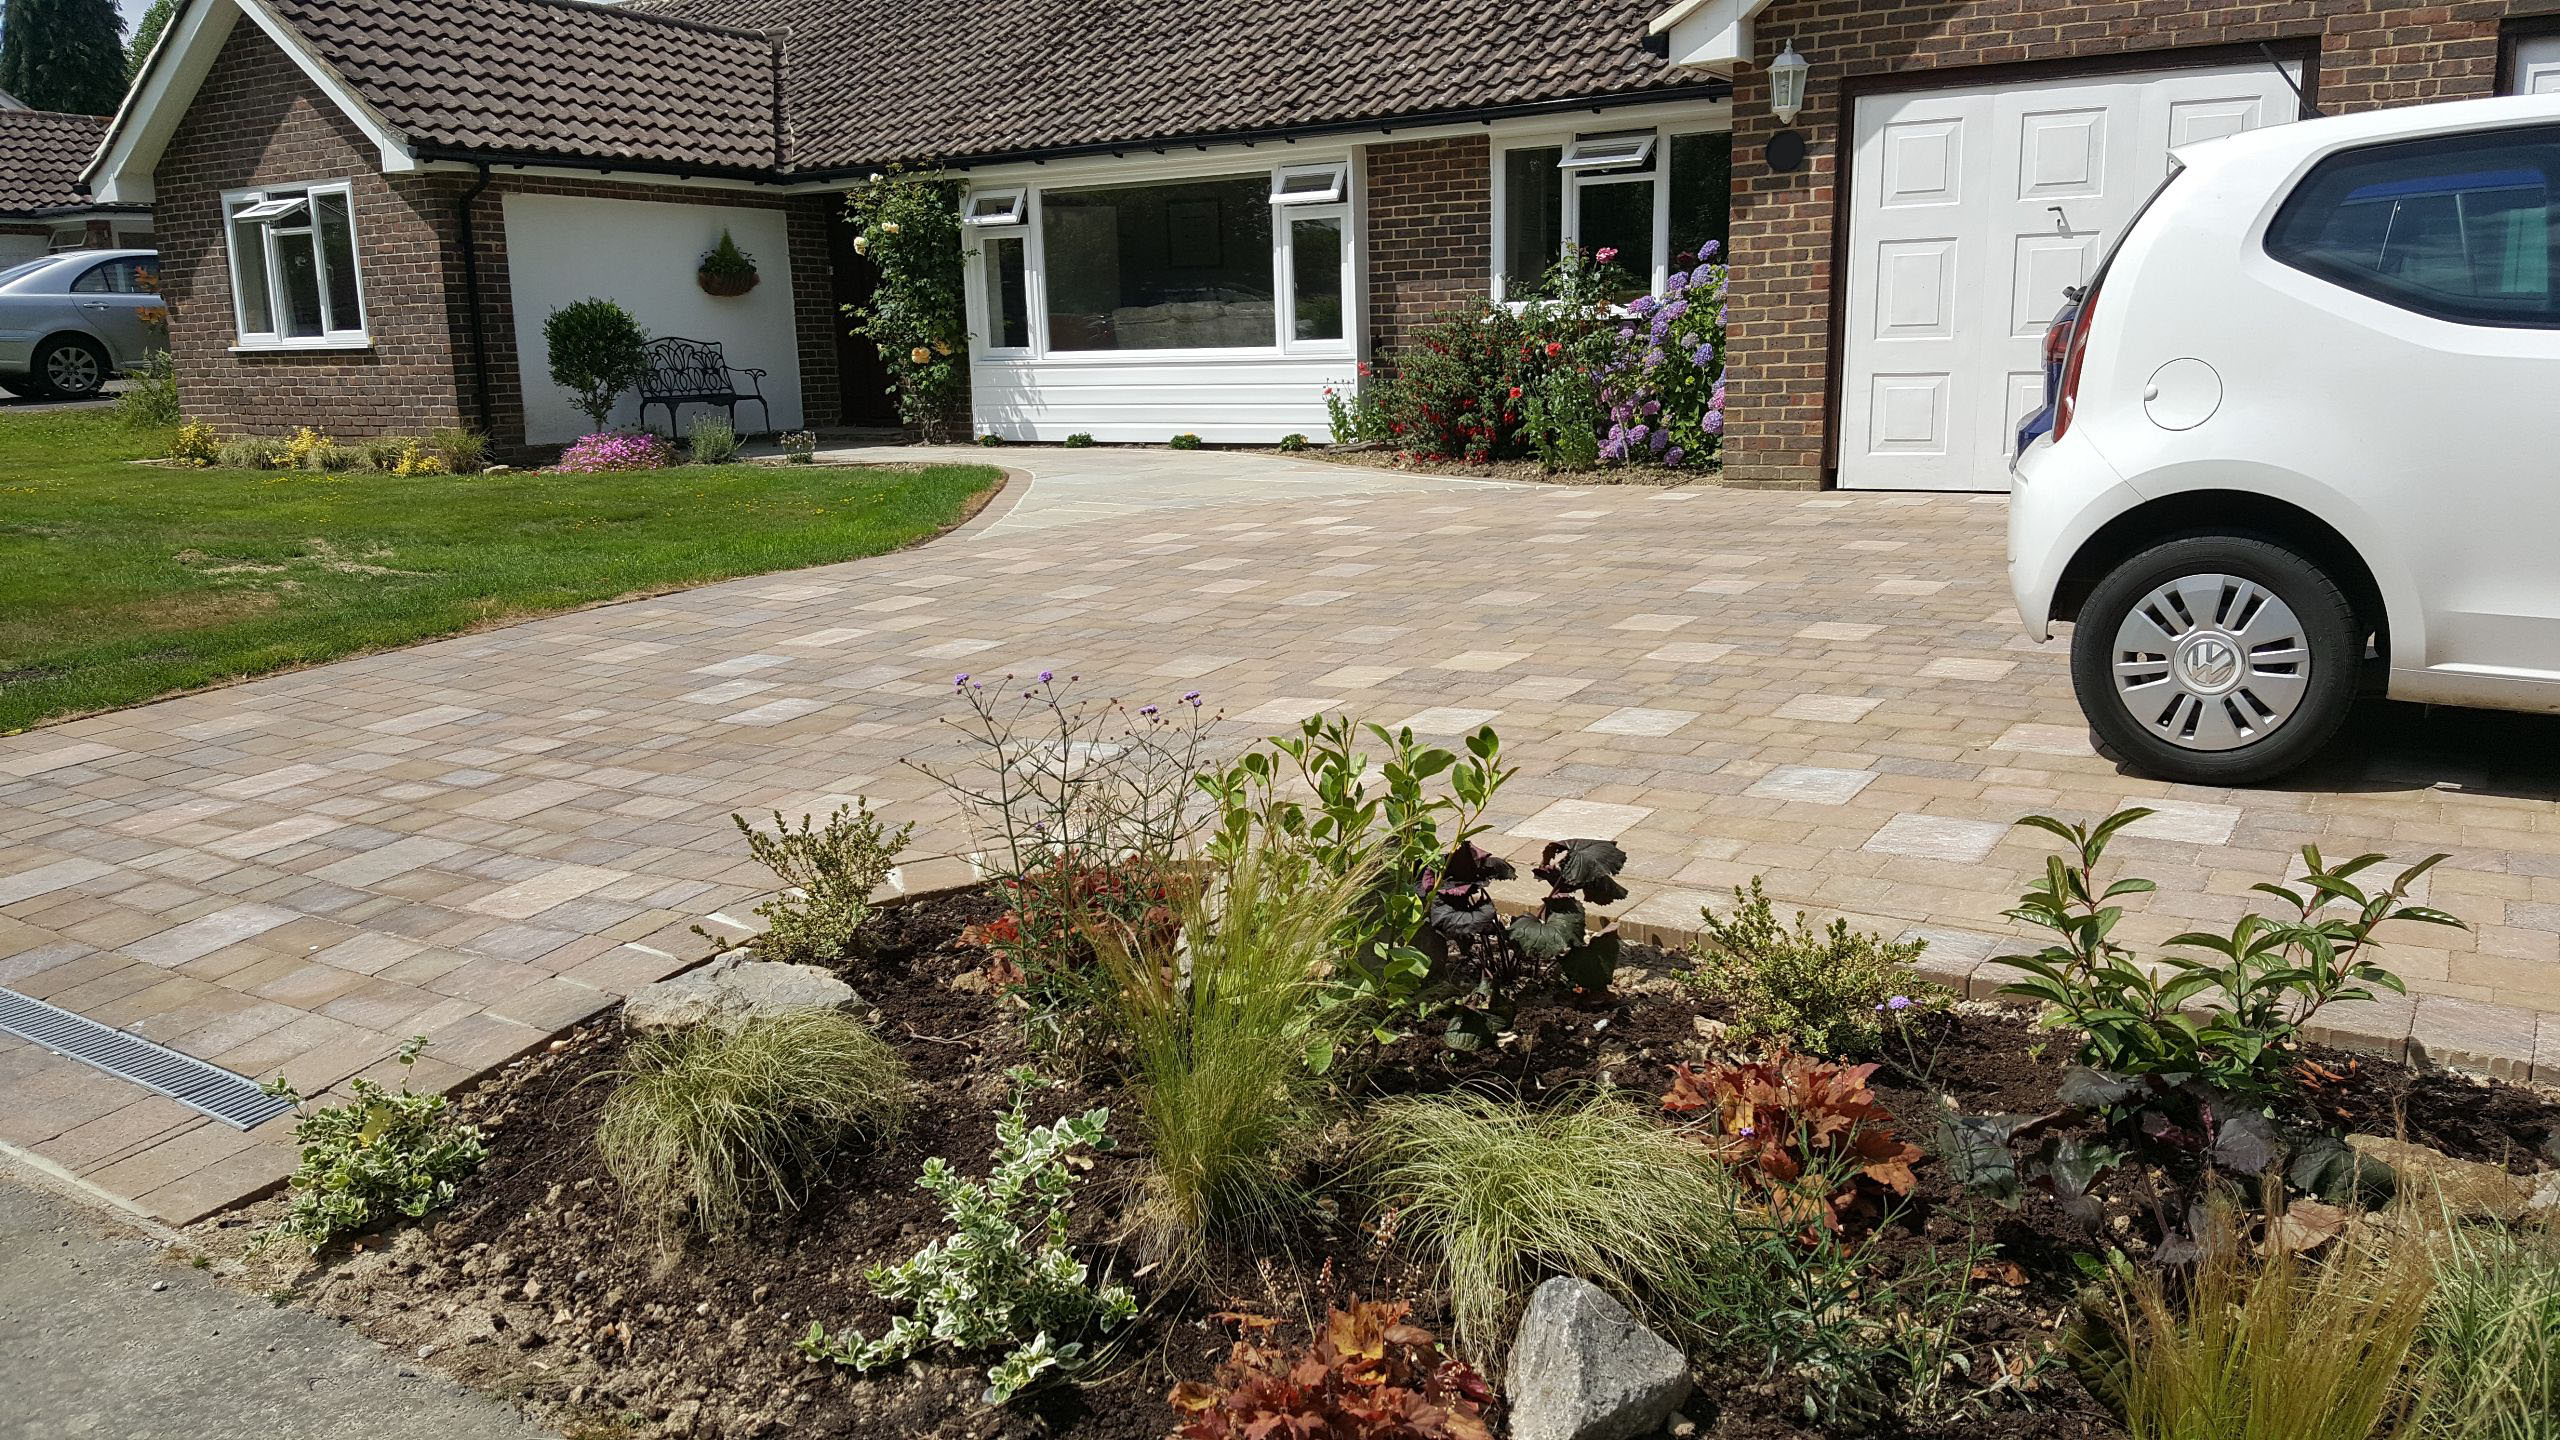 New driveway installed and designed in horsham area